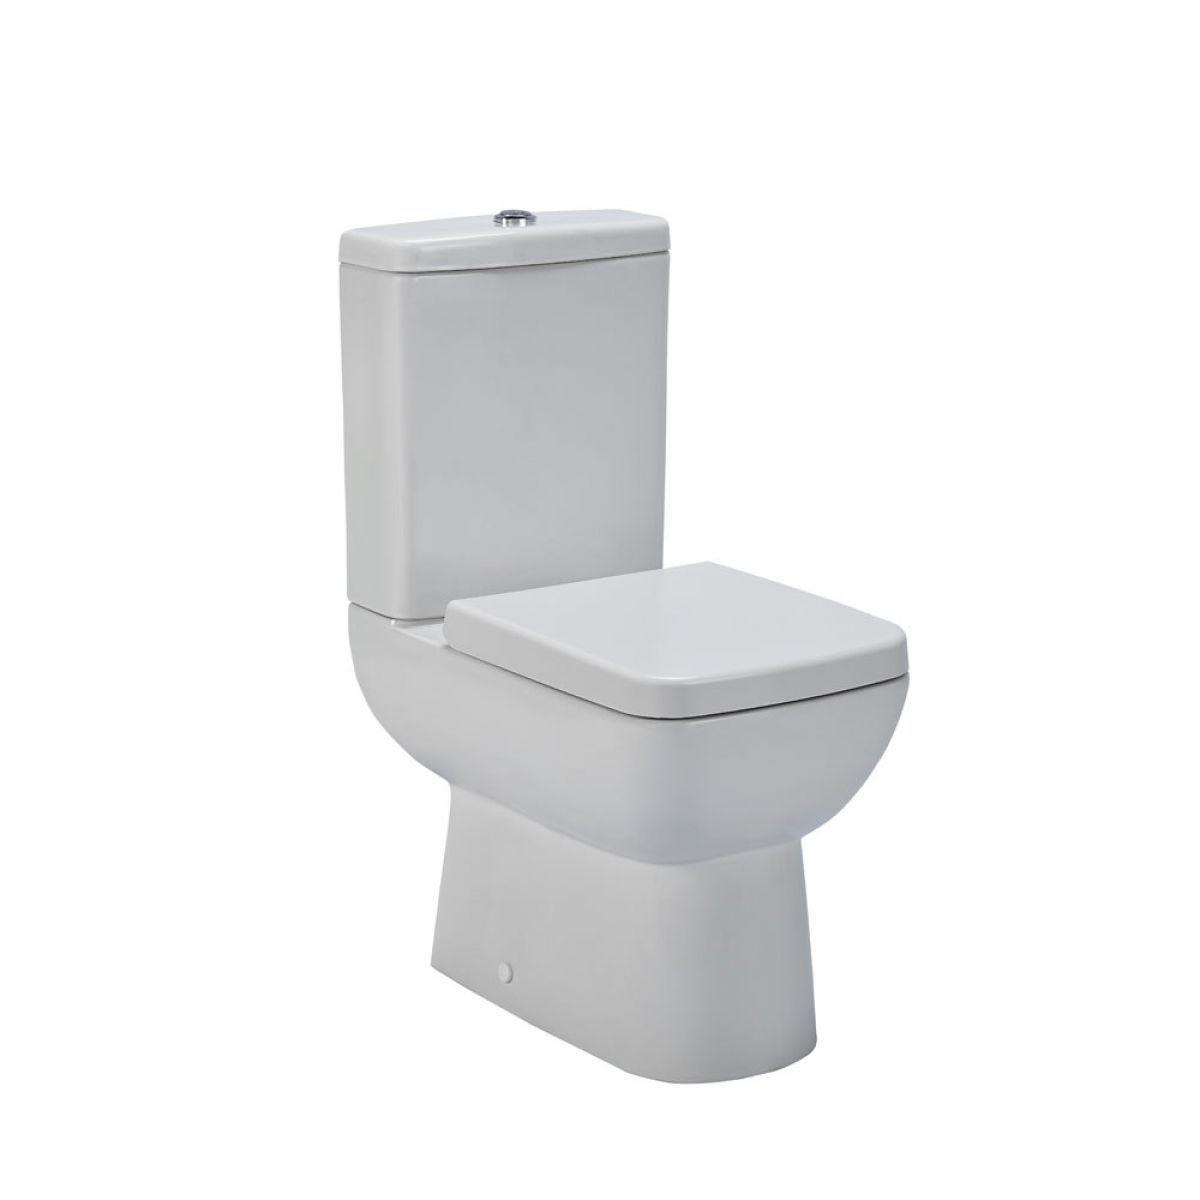 Nuie Ambrose Compact Semi Flush to Wall Toilet with Soft Close Seat